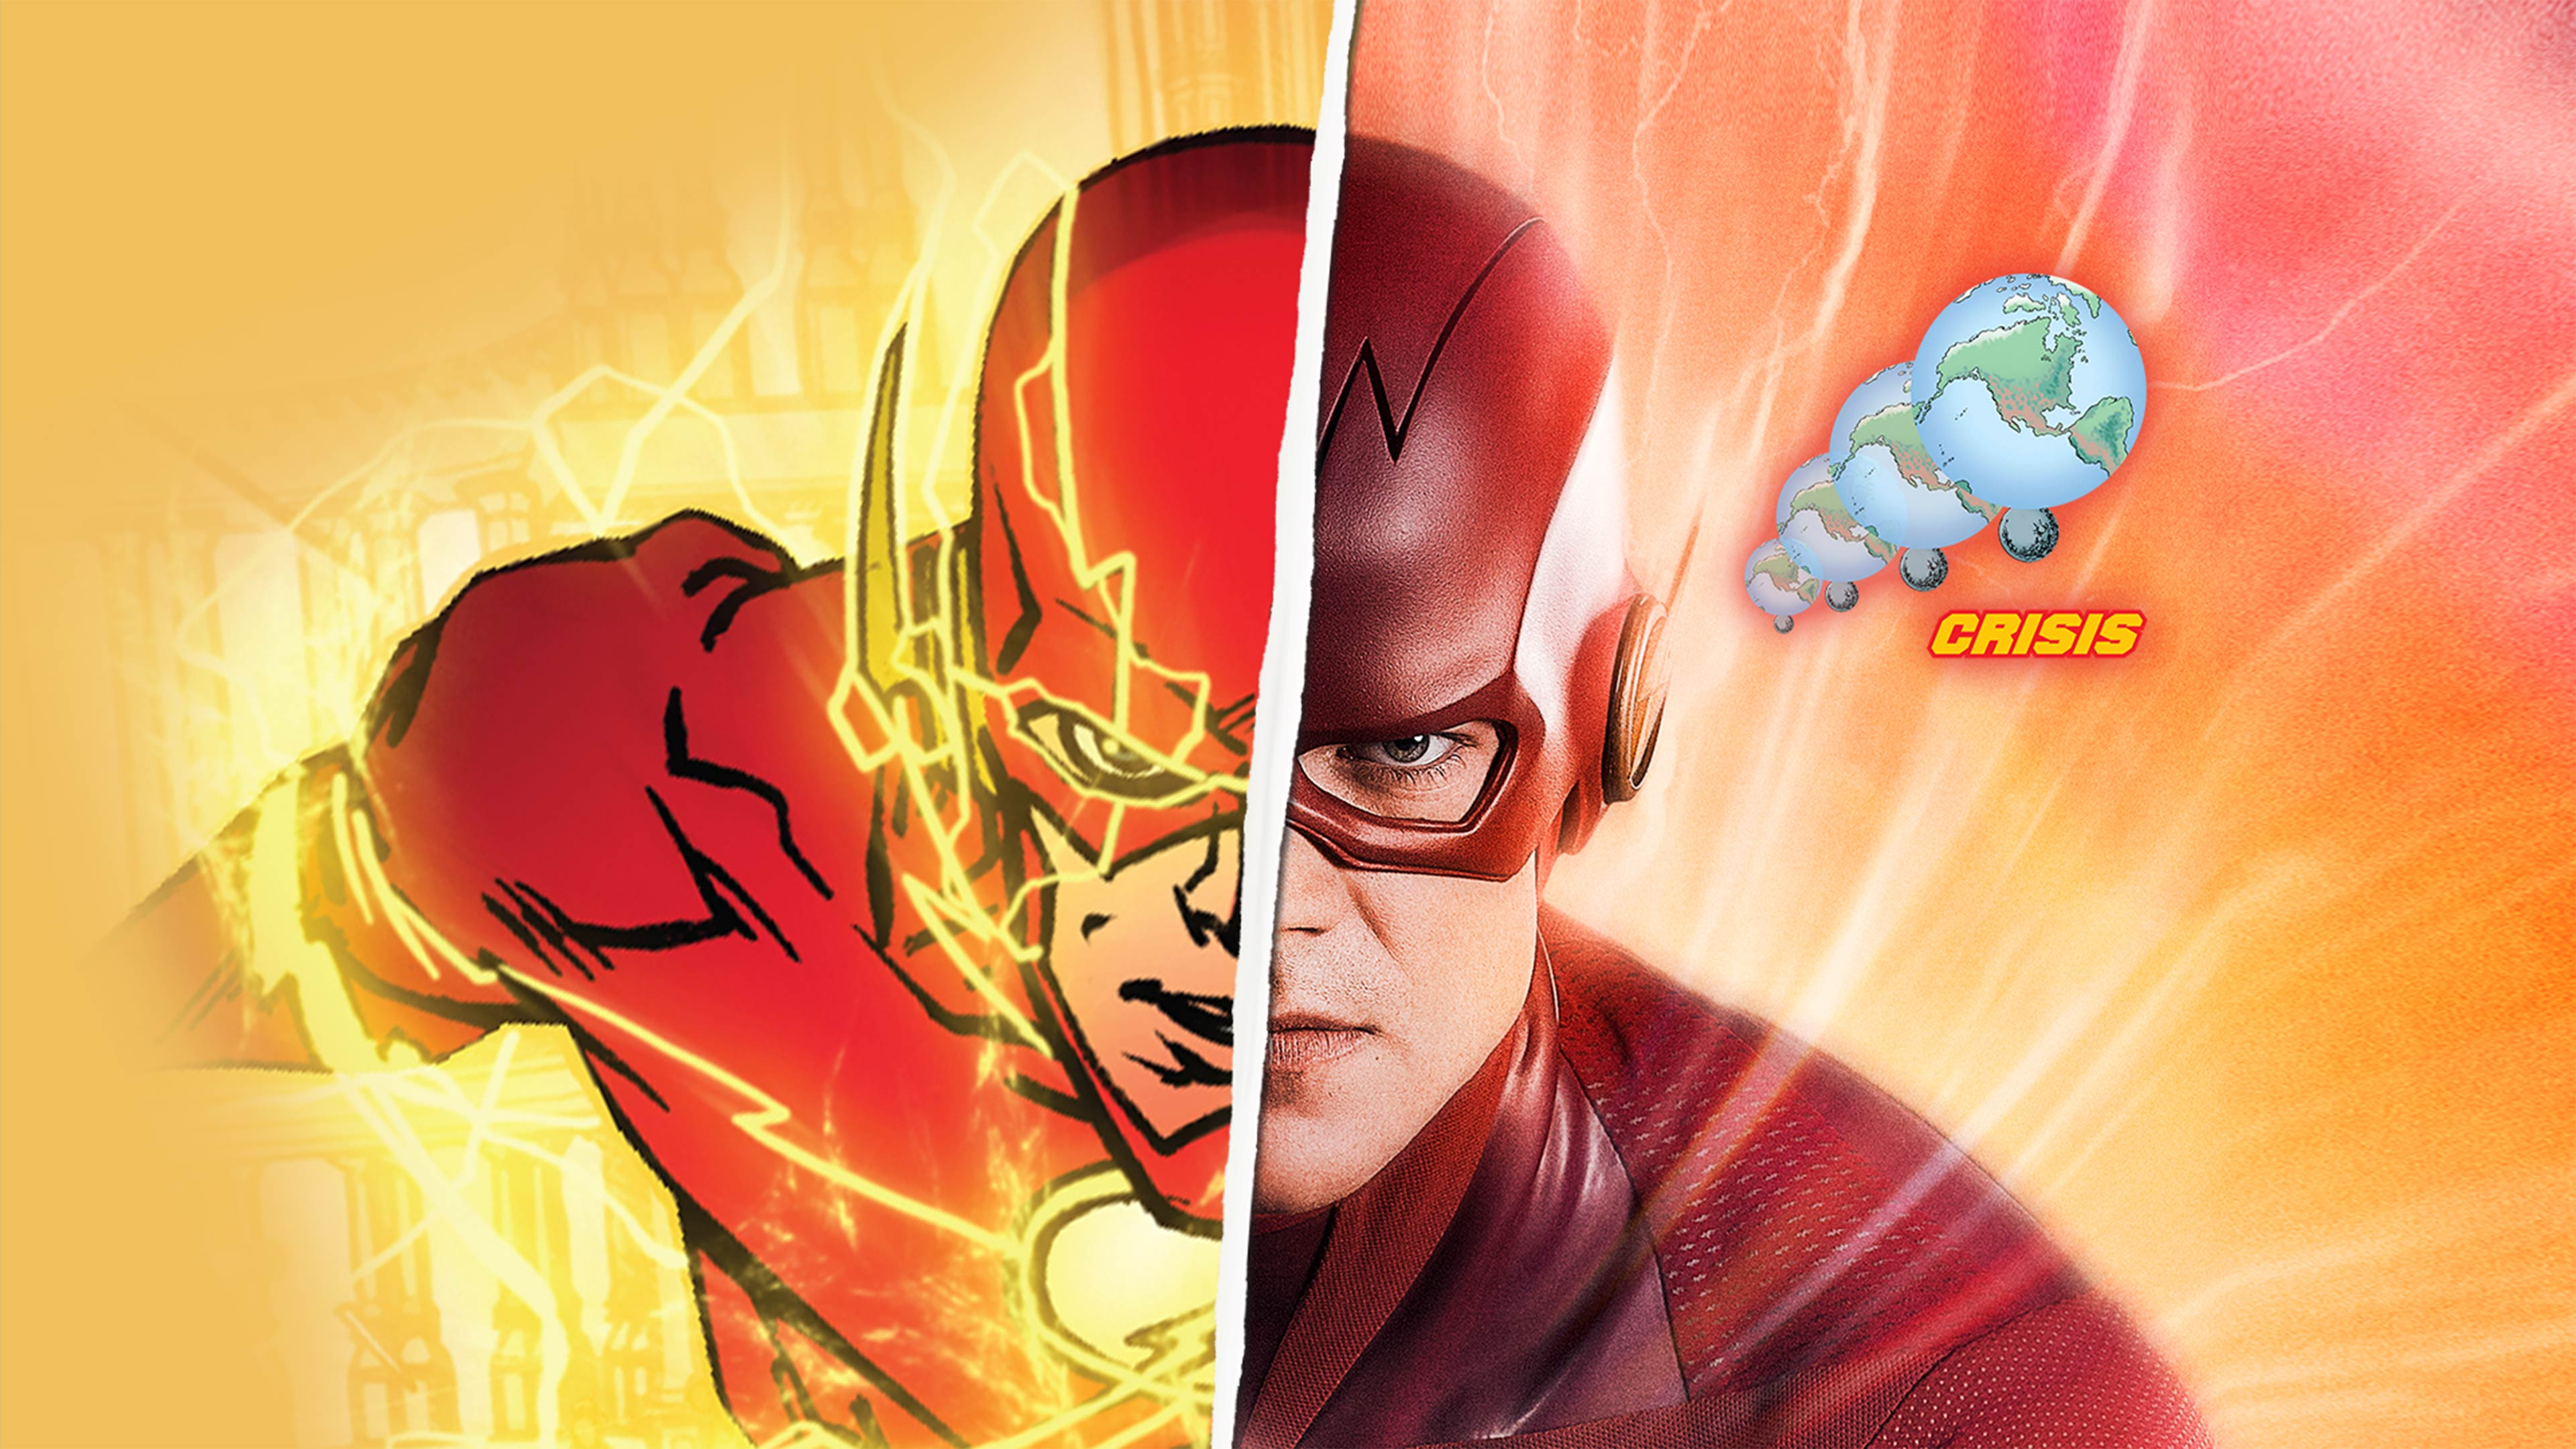 crisis_cwcomicbookroots_theflash_news_hero-c_v1_191119.jpg